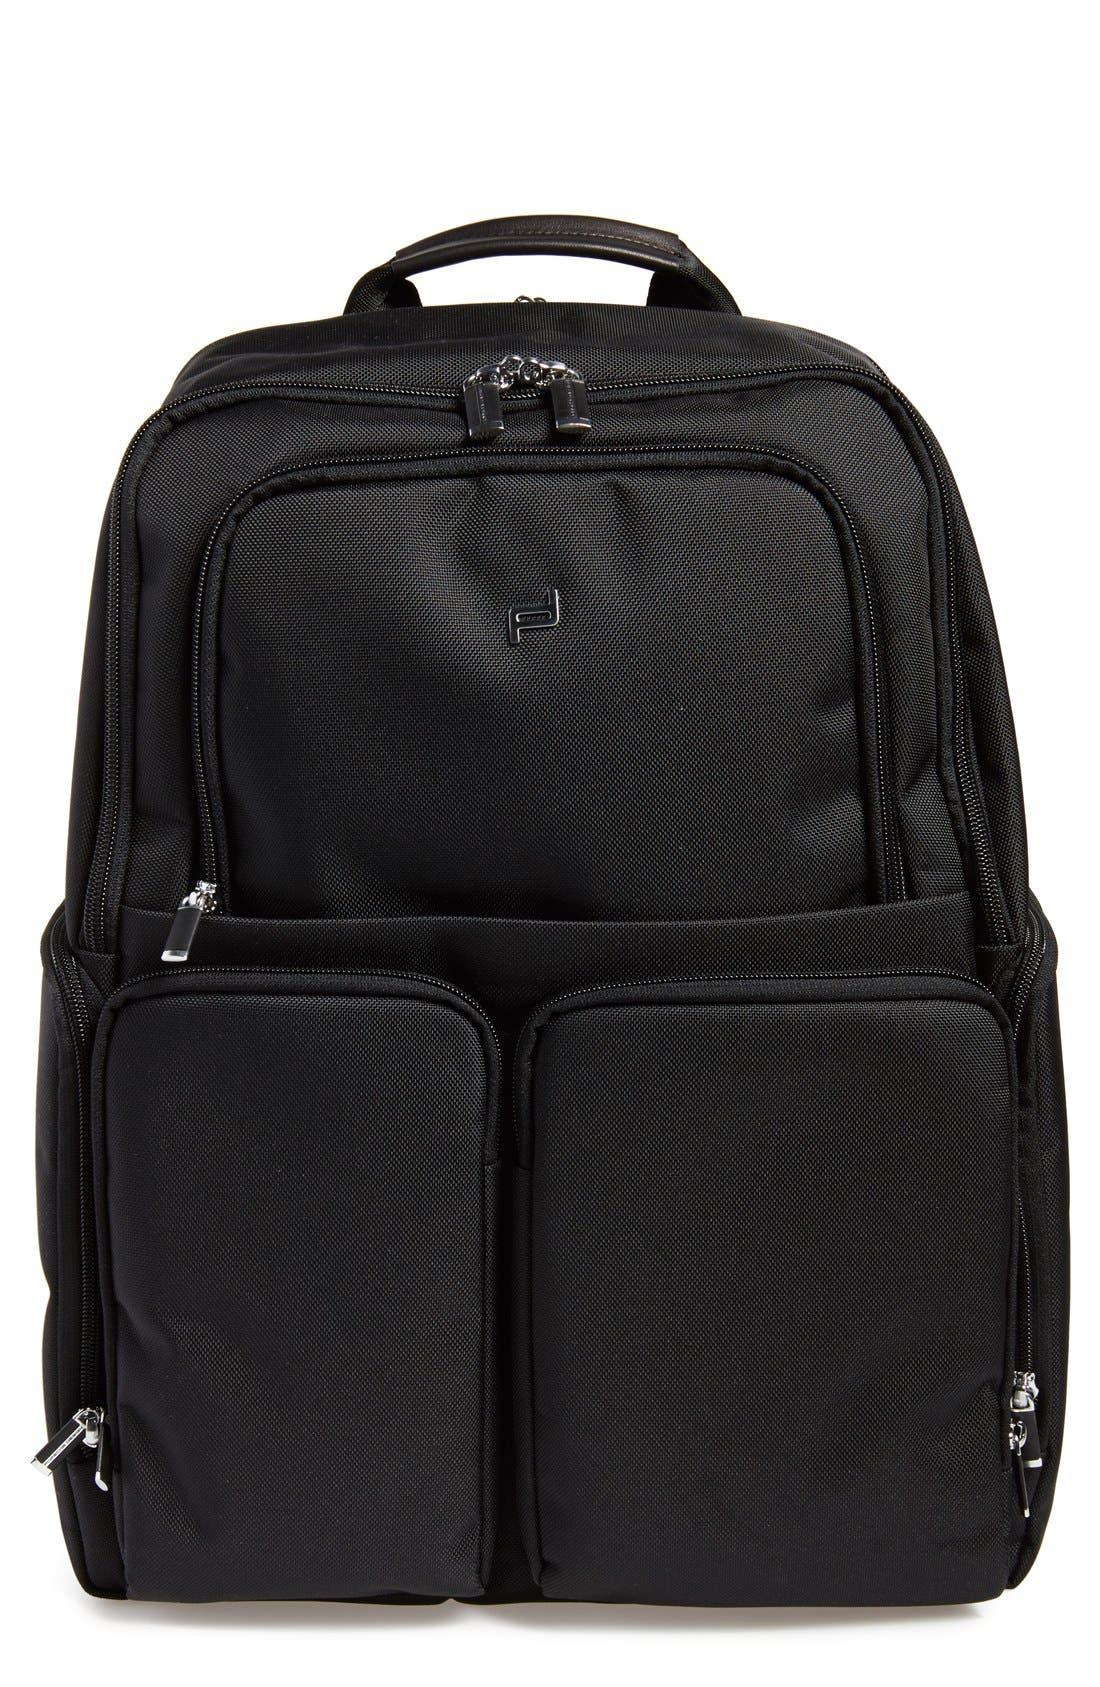 'Roadster 3.0' Backpack,                             Main thumbnail 1, color,                             001